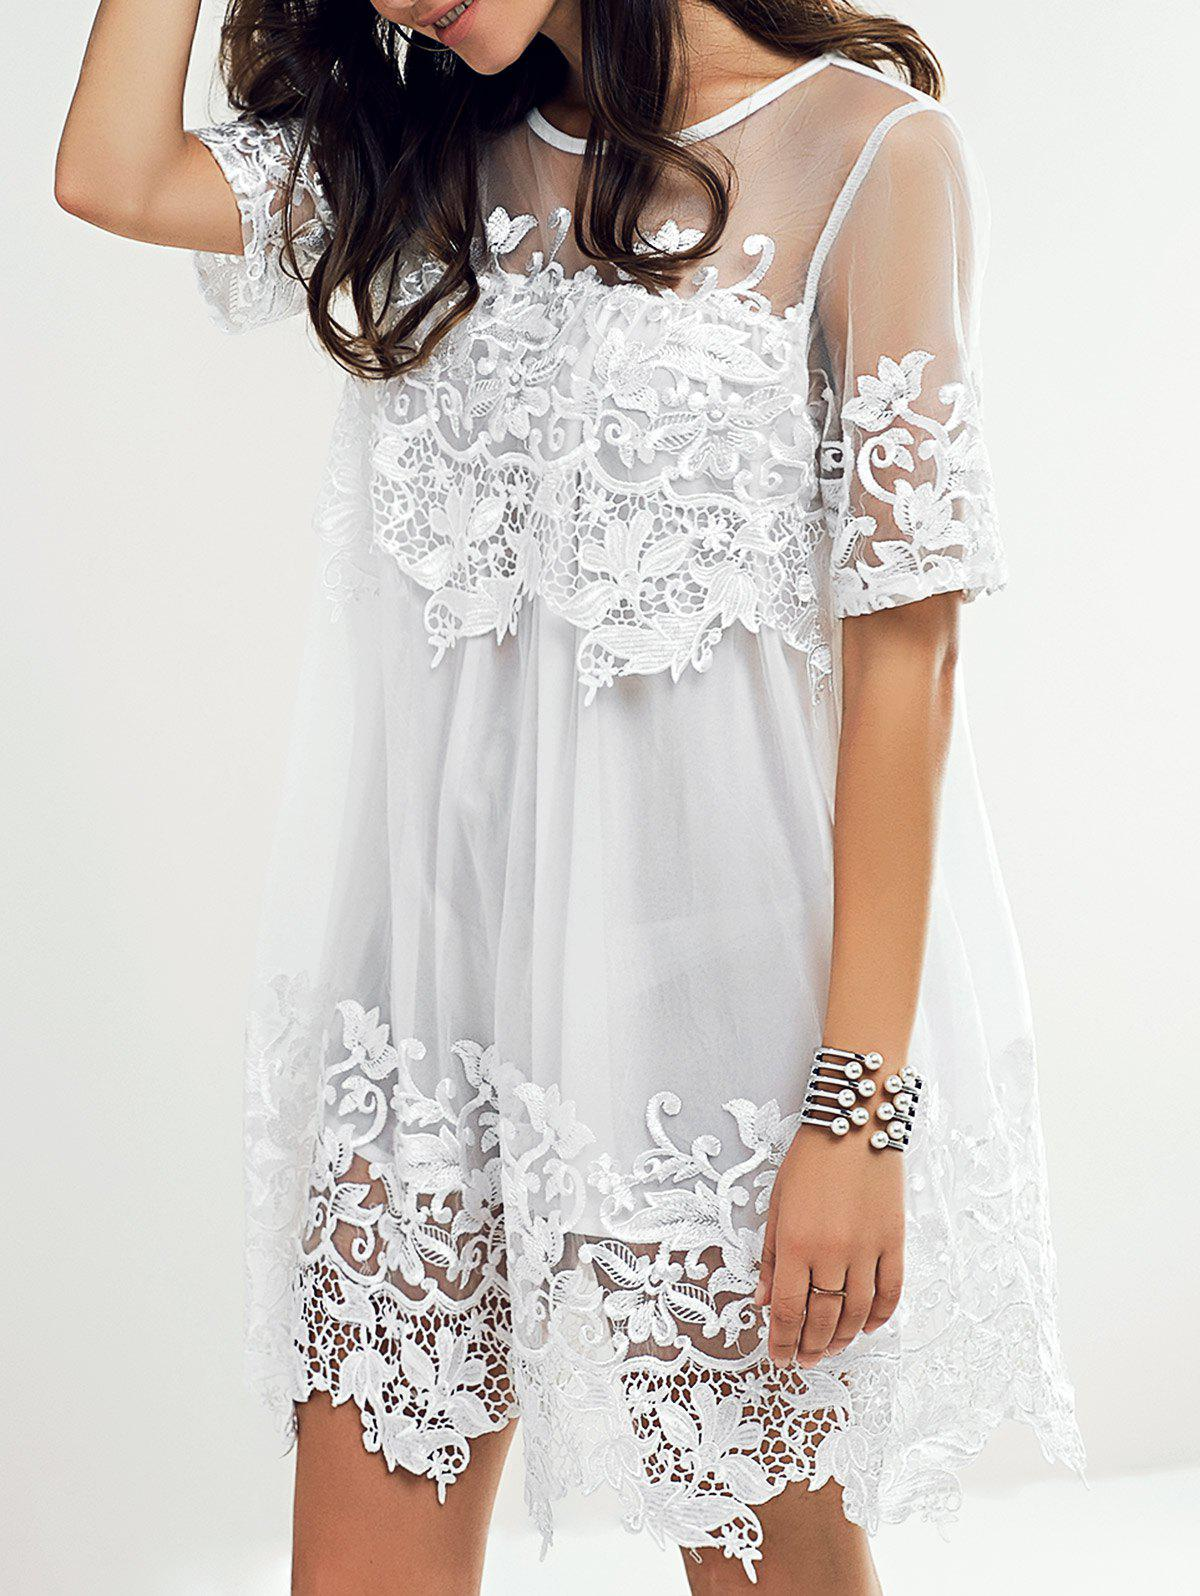 Sweet See-Through Lace Applique Dress For Women - WHITE M